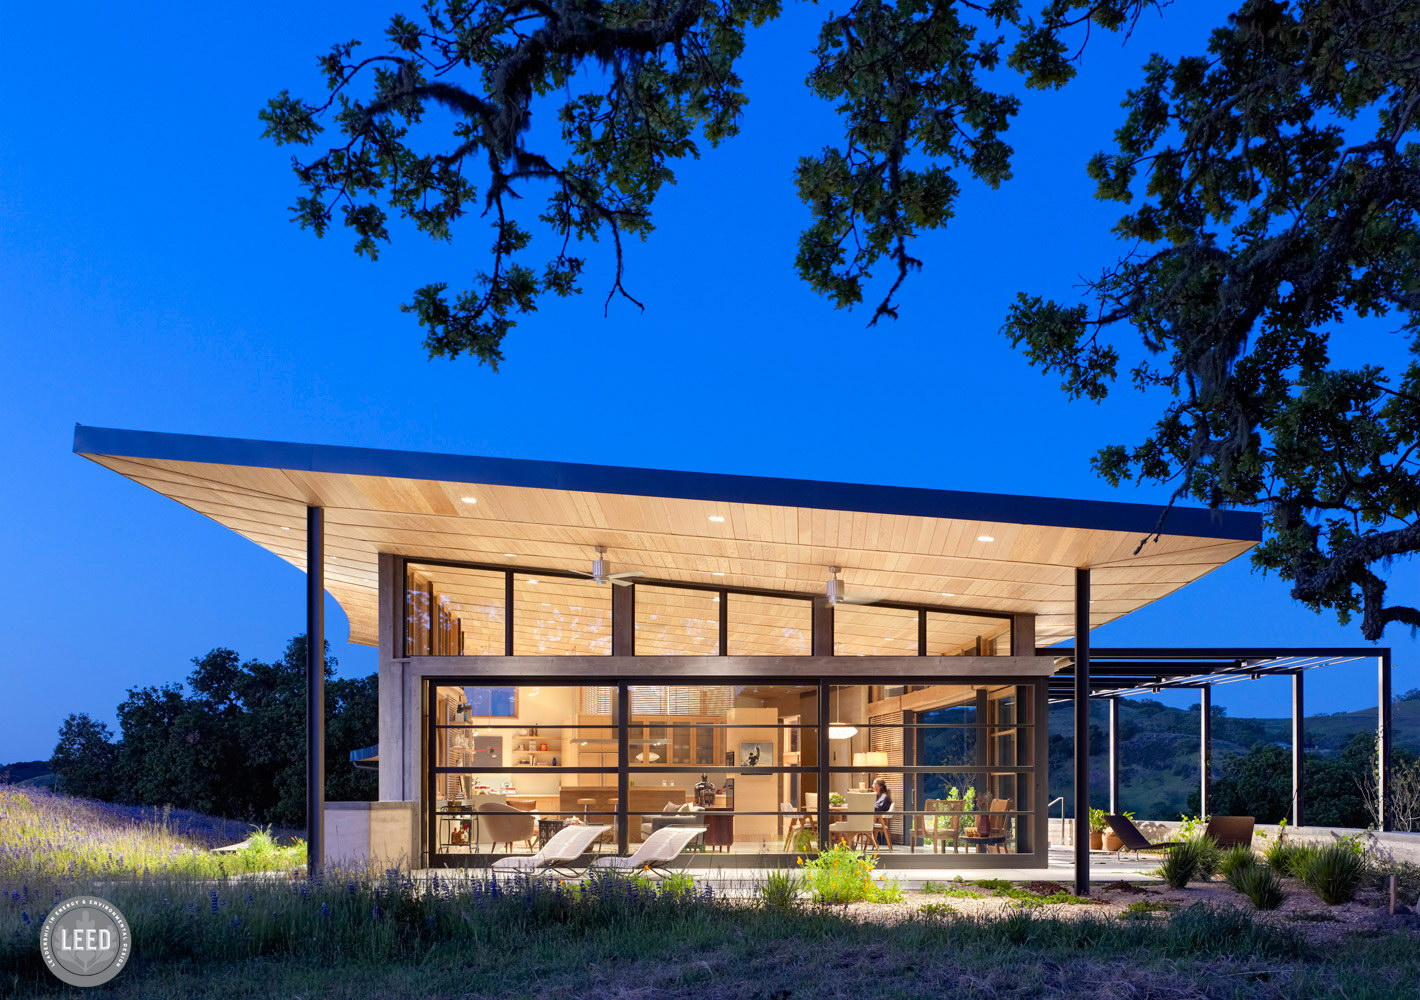 Caterpillar House by Feldman Architecture